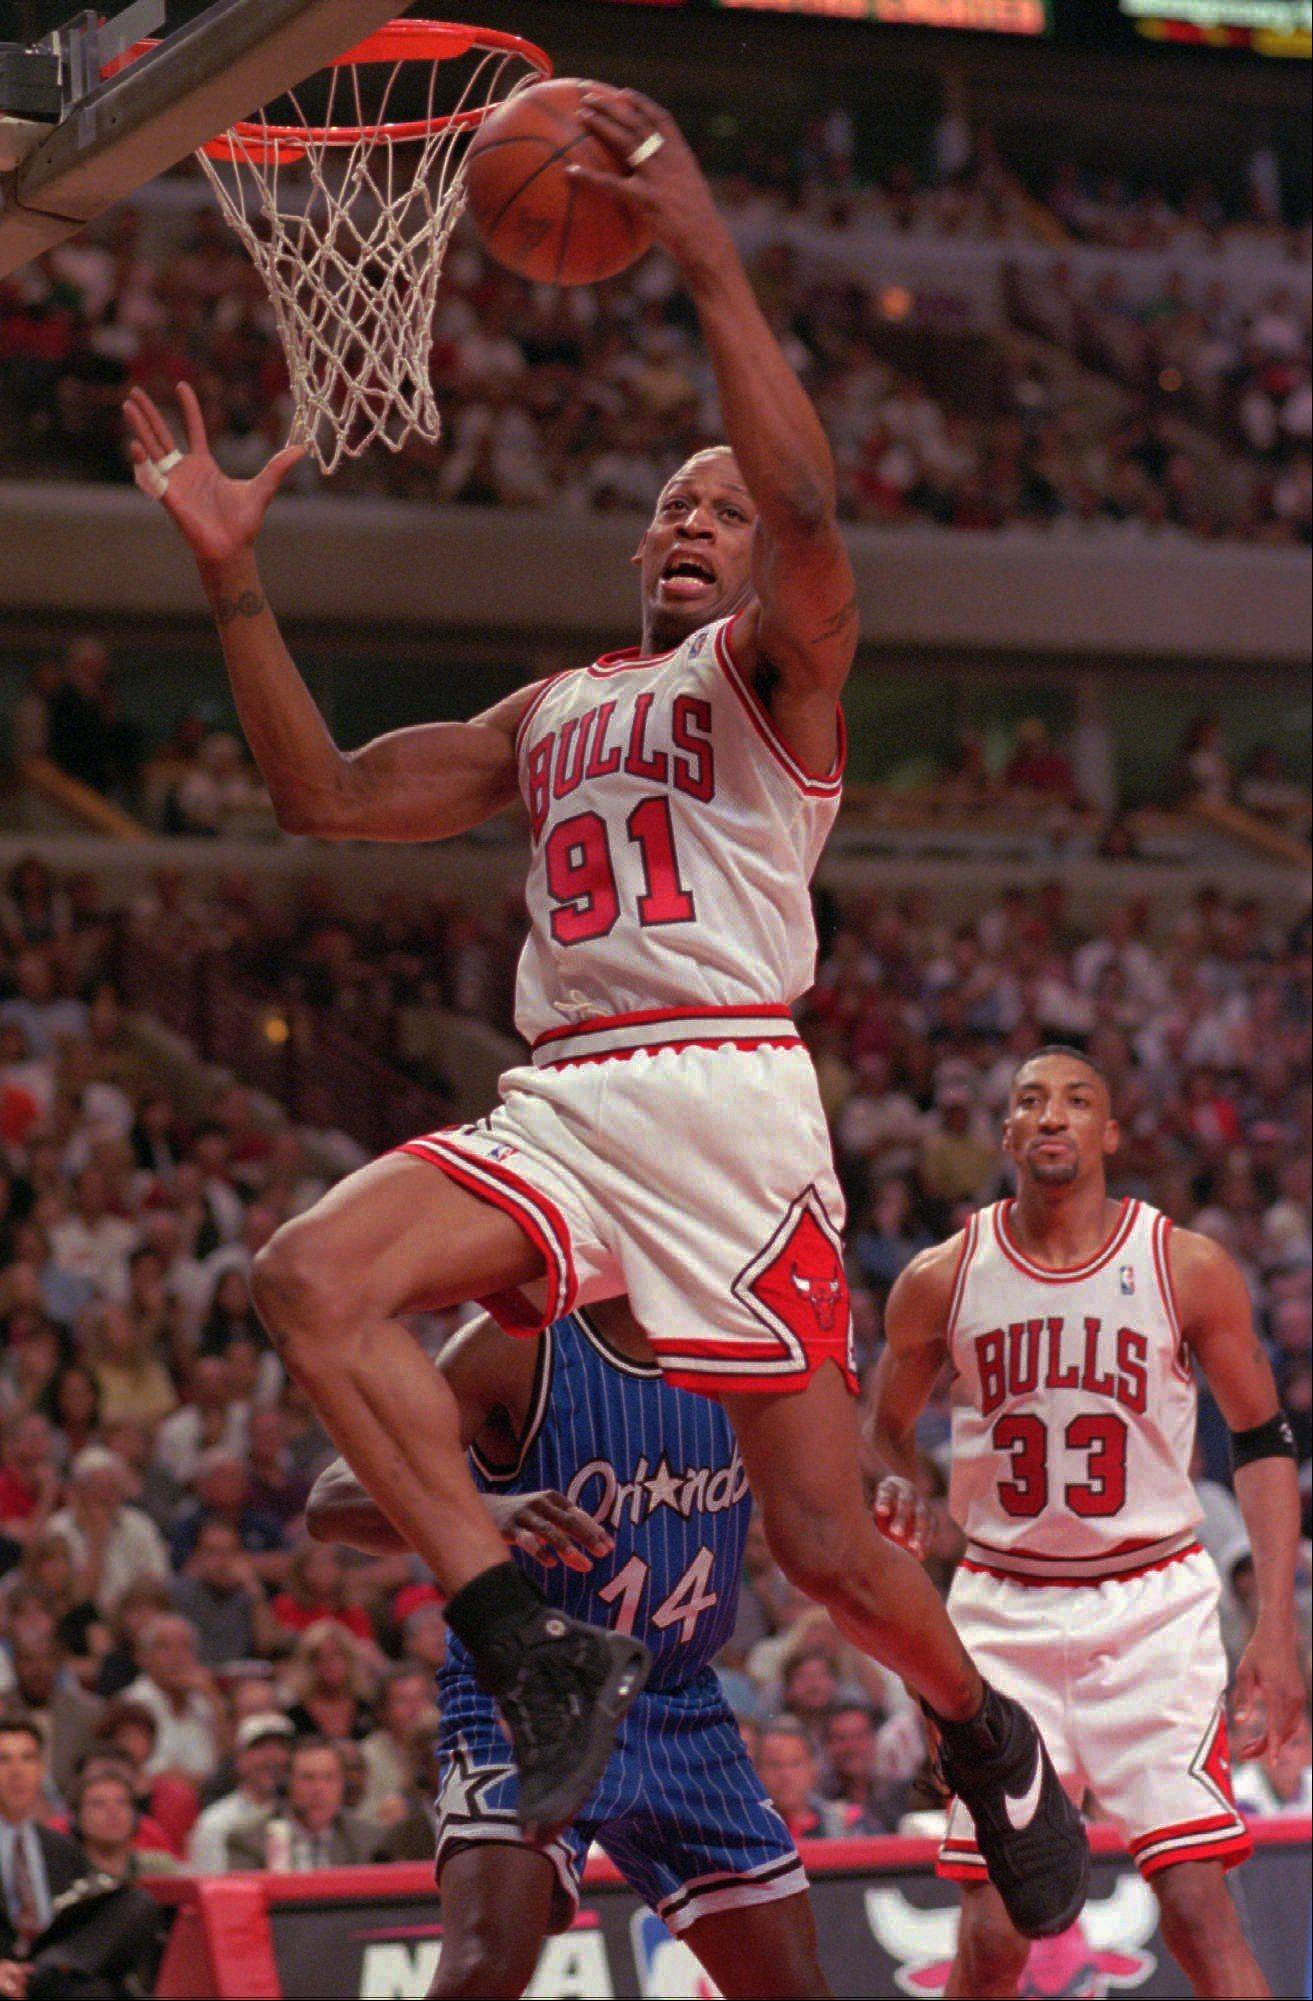 This May 19, 1996, file photo shows Chicago Bulls' forward Dennis Rodman grabbing one of his 21 rebounds during the fourth quarter of Game 1 of the NBA Eastern Conference Finals against the Orlando Magic, in Chicago.